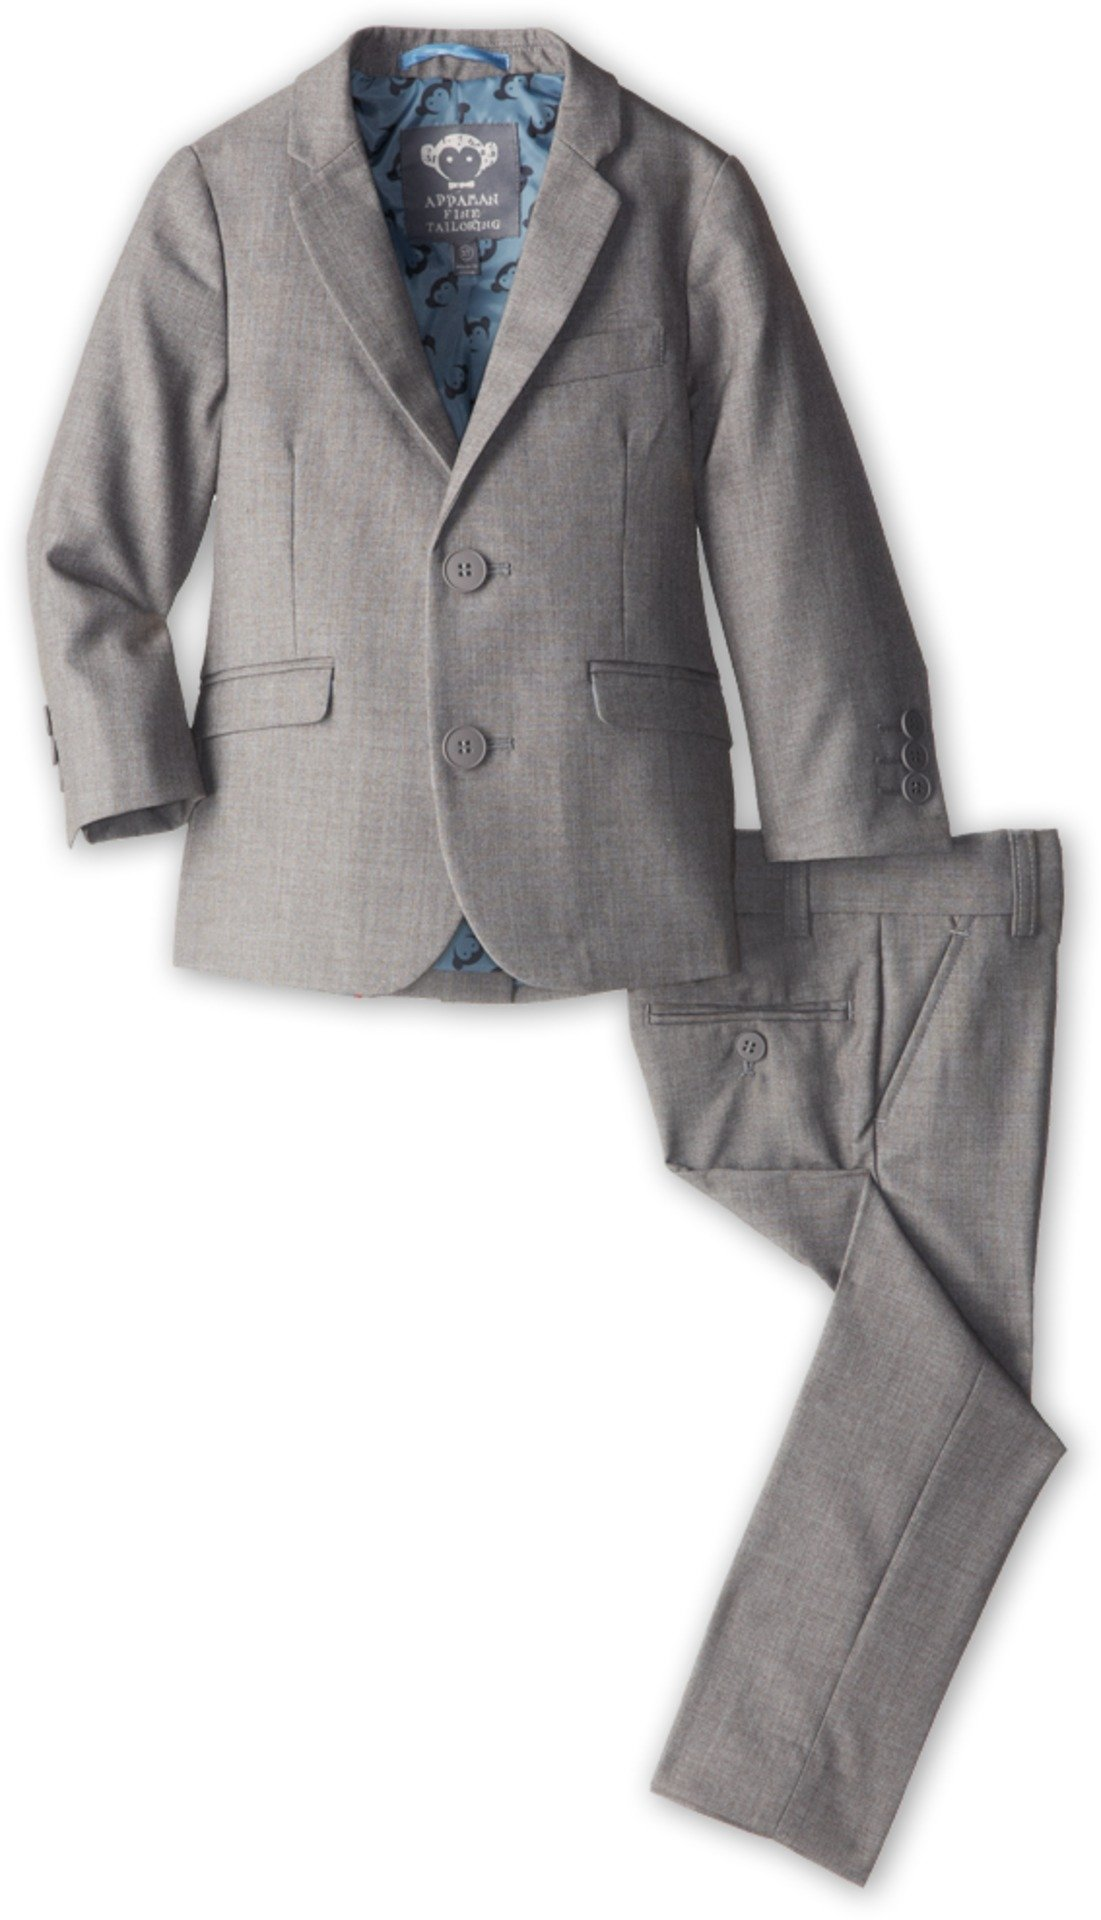 Appaman Big Boys' Two Piece Classic Mod Suit, Mist, 8